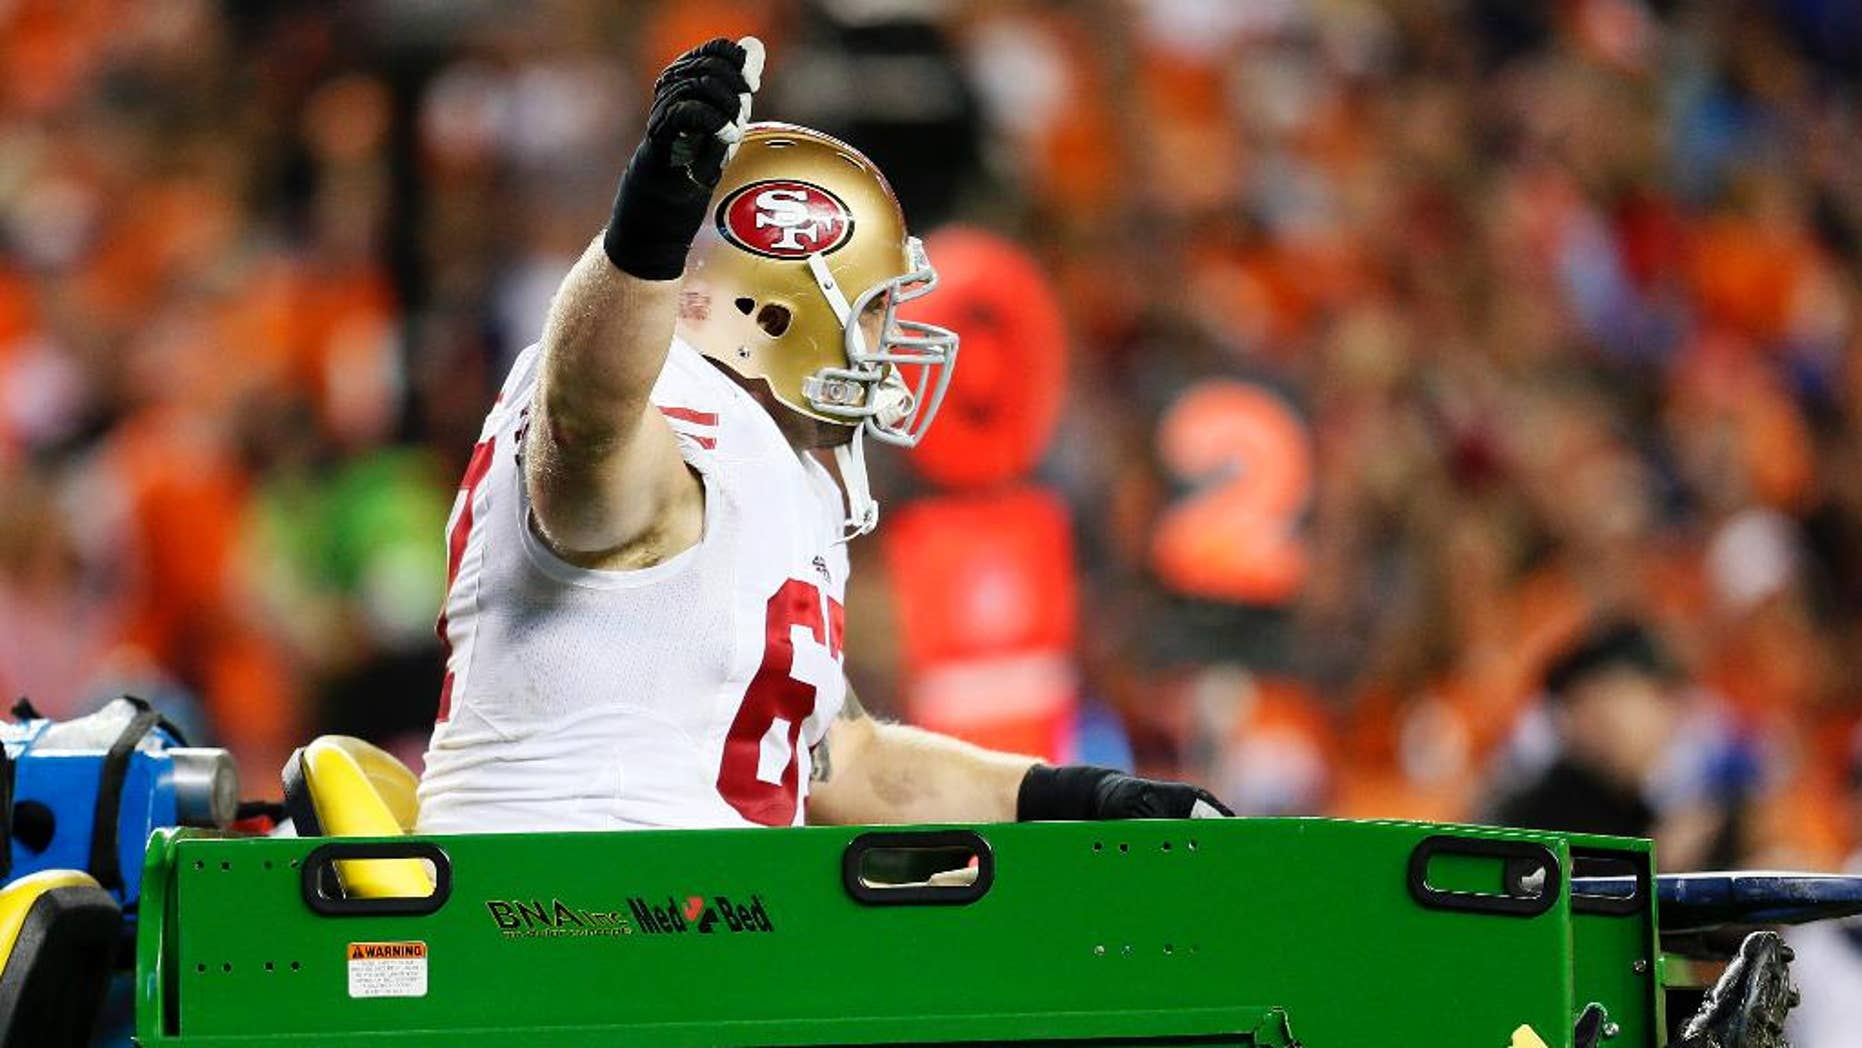 San Francisco 49ers center Daniel Kilgore gives the thumbs up as he is carted off the field against the Denver Broncos during the second half of an NFL football game, Sunday, Oct. 19, 2014, in Denver.  (AP Photo/Joe Mahoney)